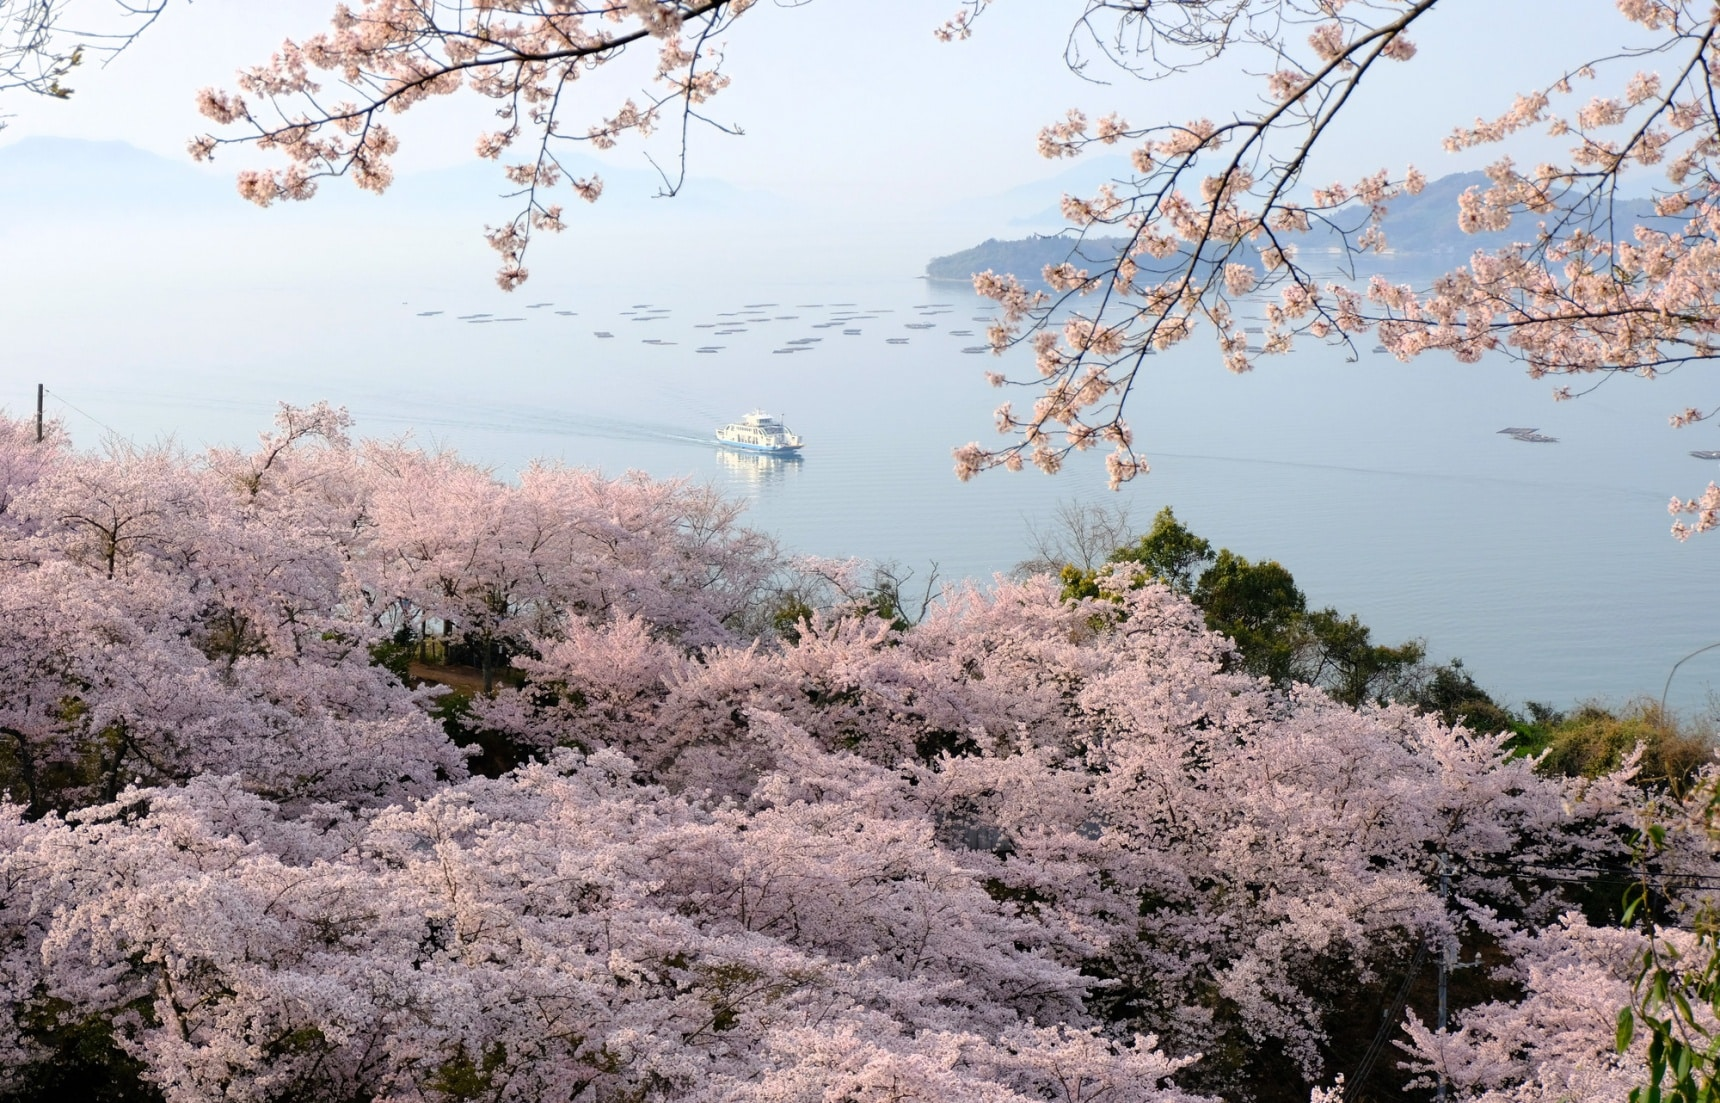 The Cherry Blossom Beauty of Shodoshima